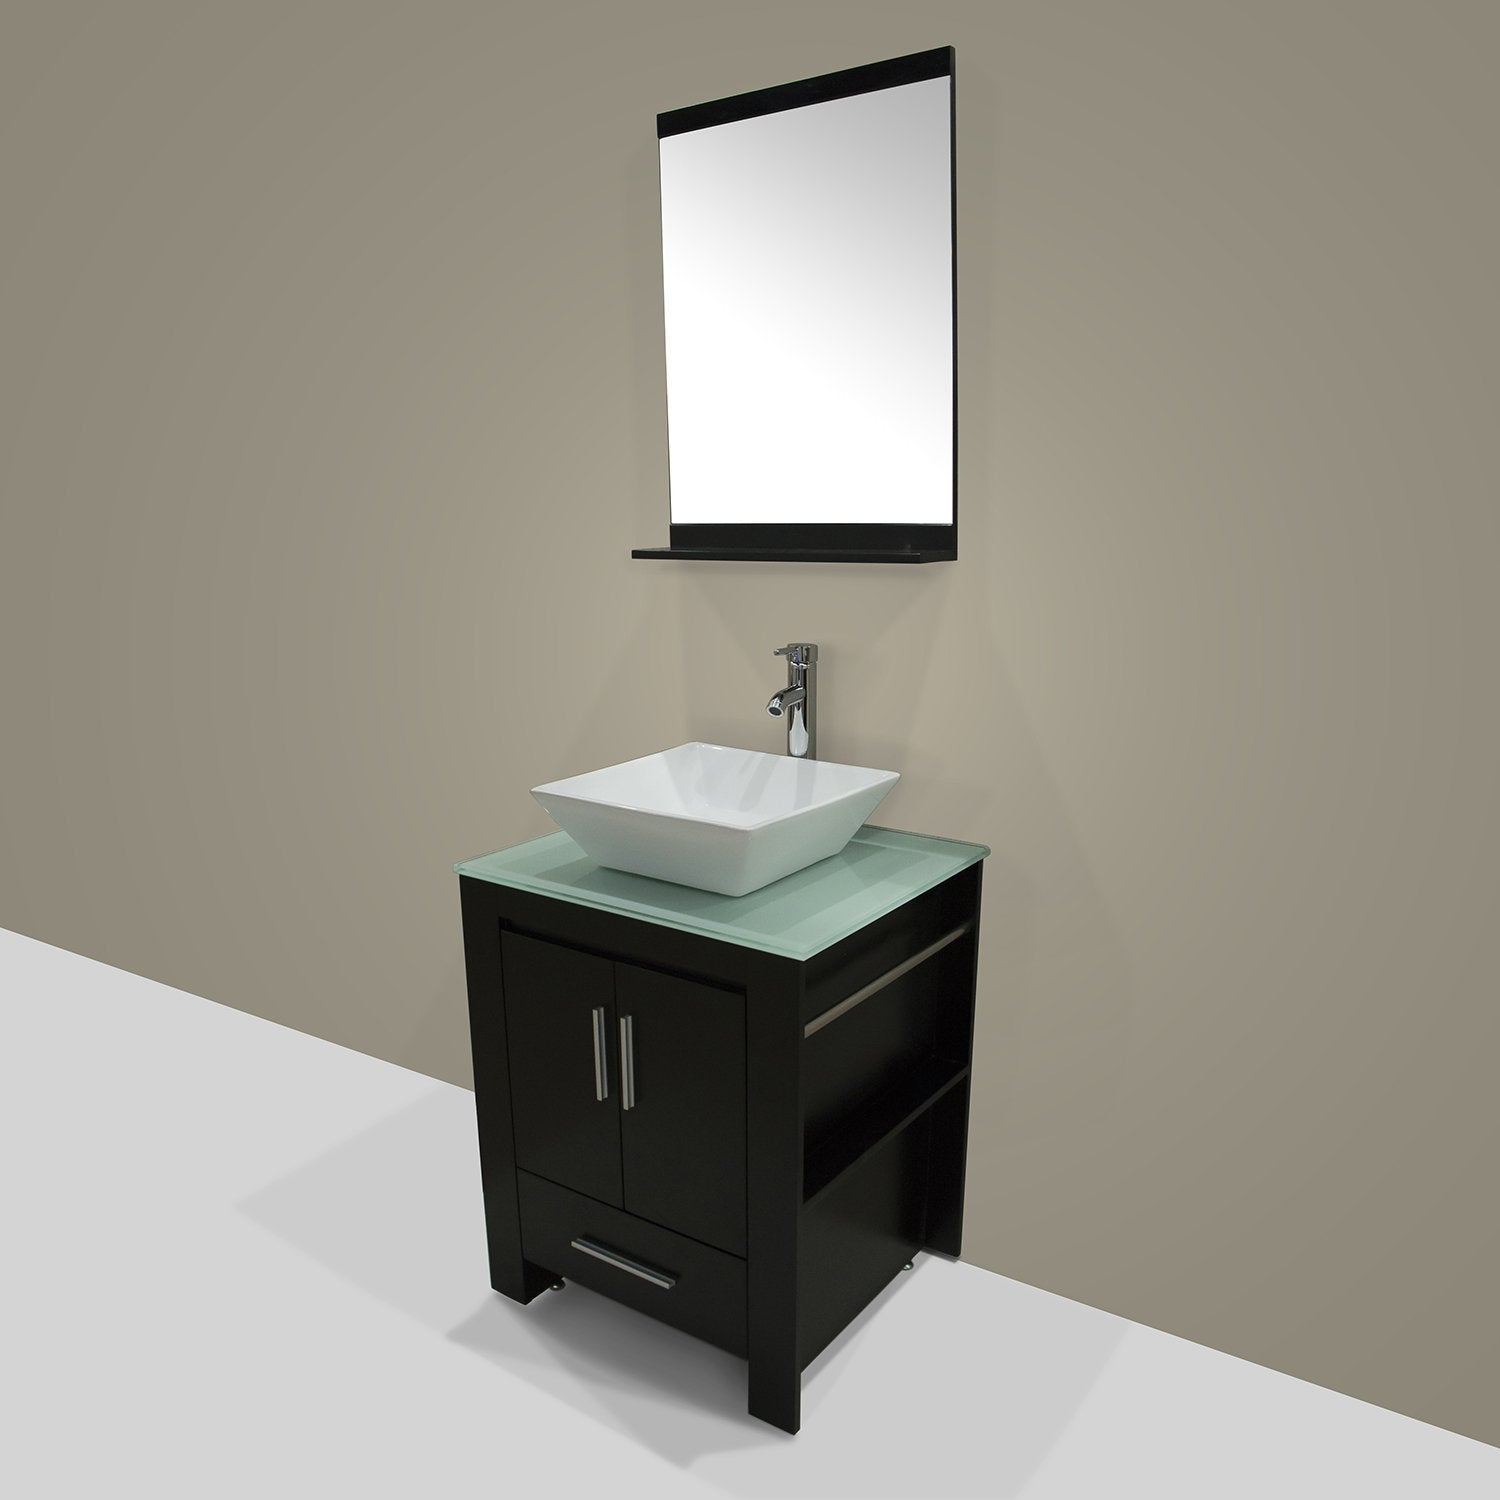 Amazon best walcut 24 inch bathroom vanity and sink combo modern black mdf cabinet ceramic vessel sink with faucet and pop up drain mirror tempered glass counter top